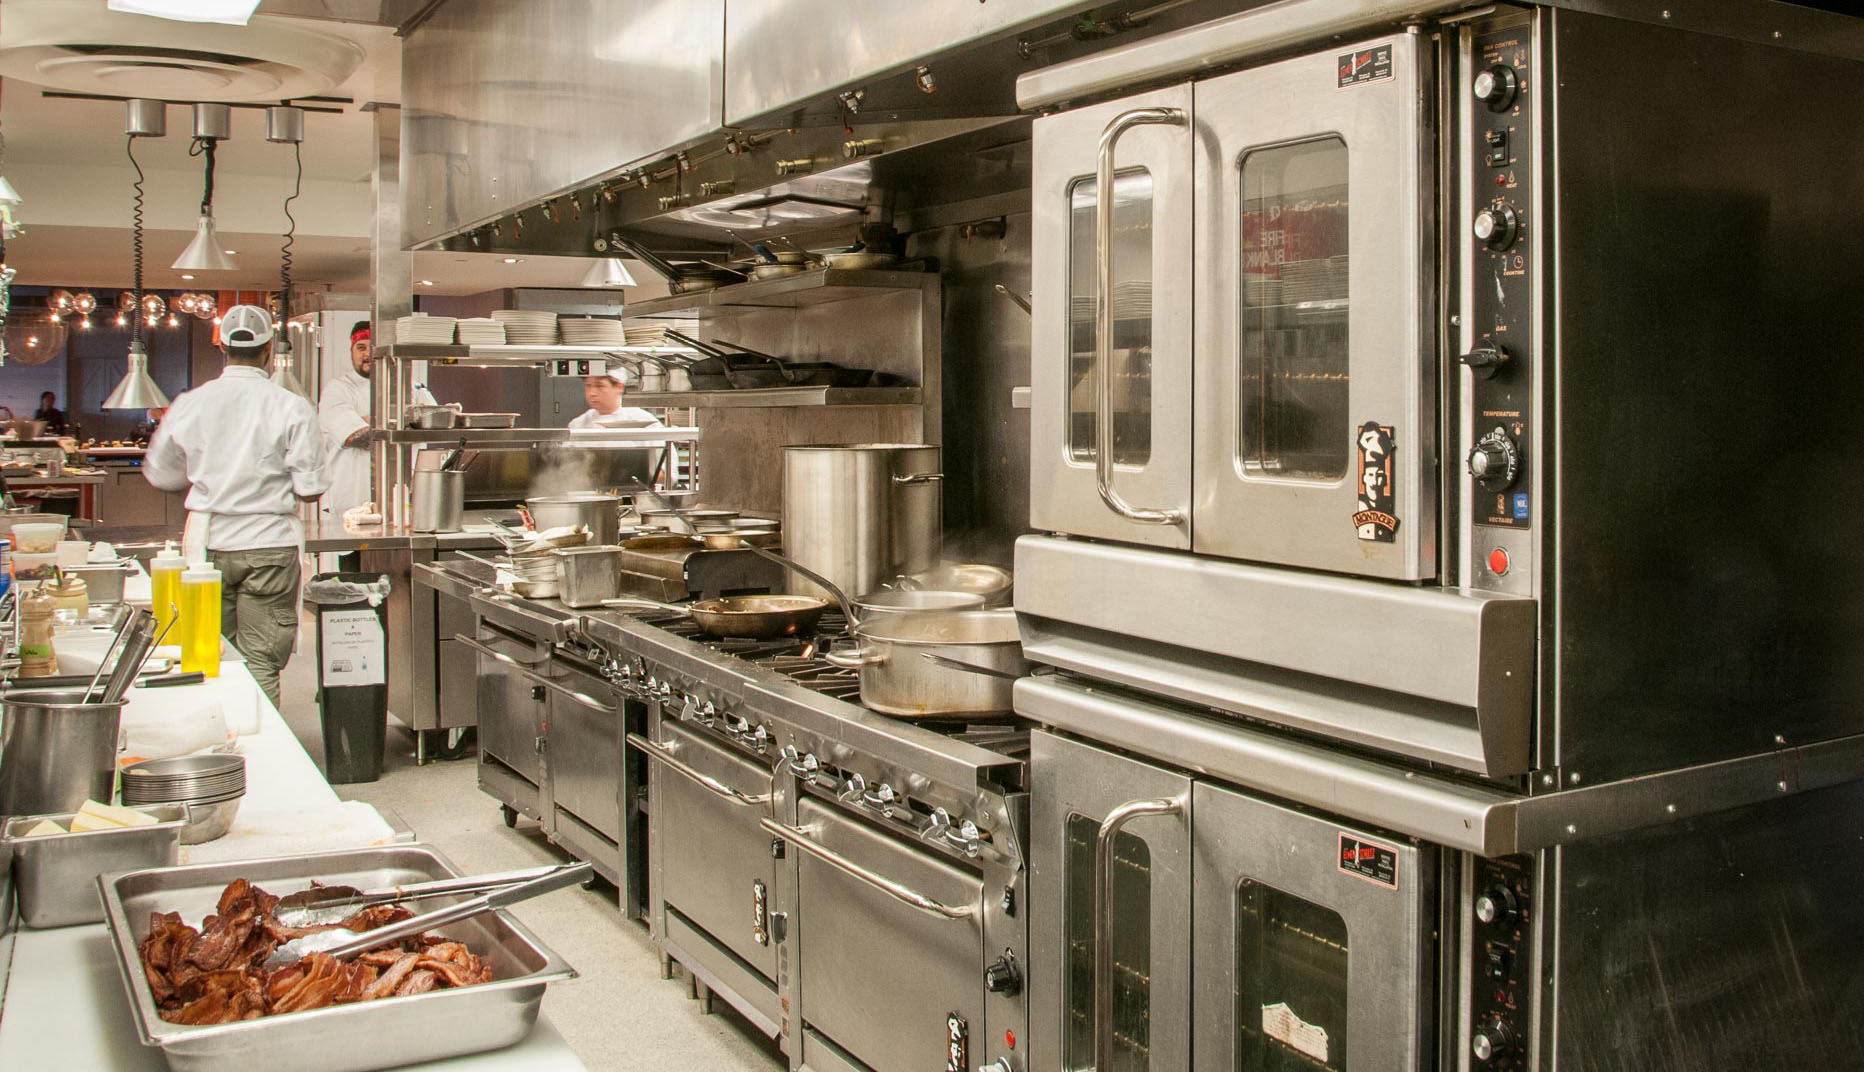 commercial kitchen design efficiencies m tucker new york ny foodservice equipment supplies 730